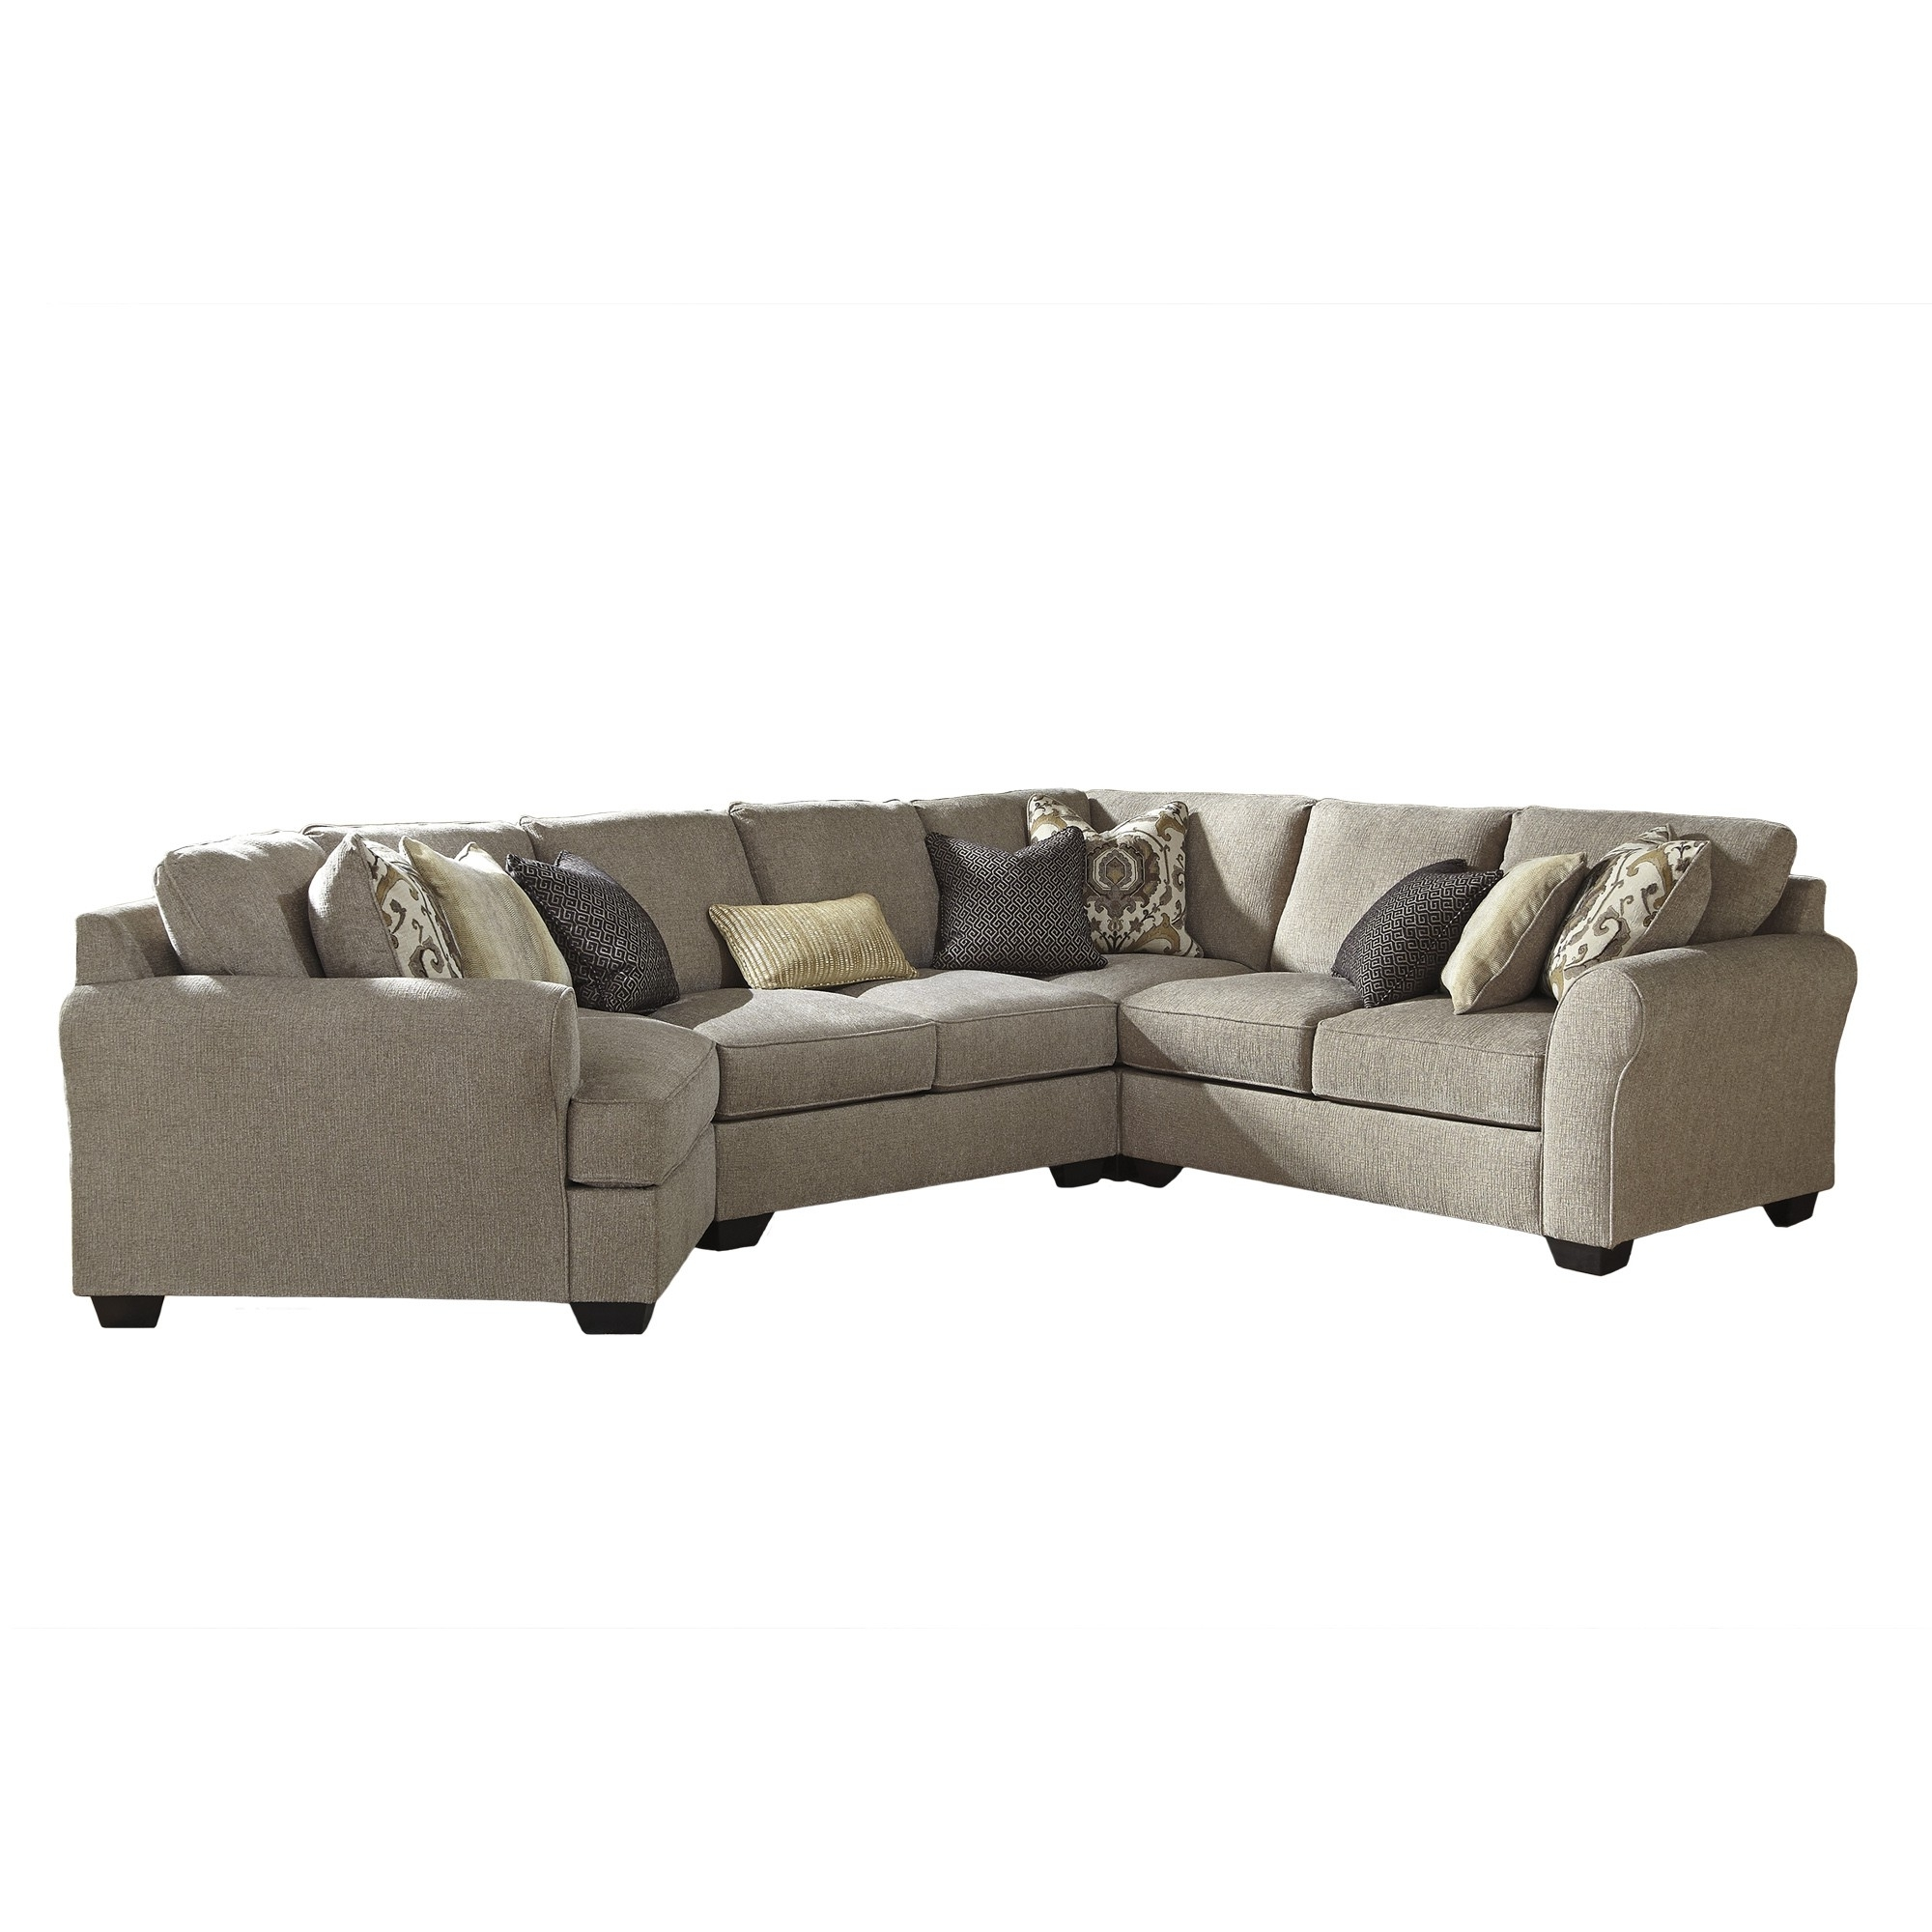 Tepperman's Regarding Teppermans Sectional Sofas (View 9 of 20)